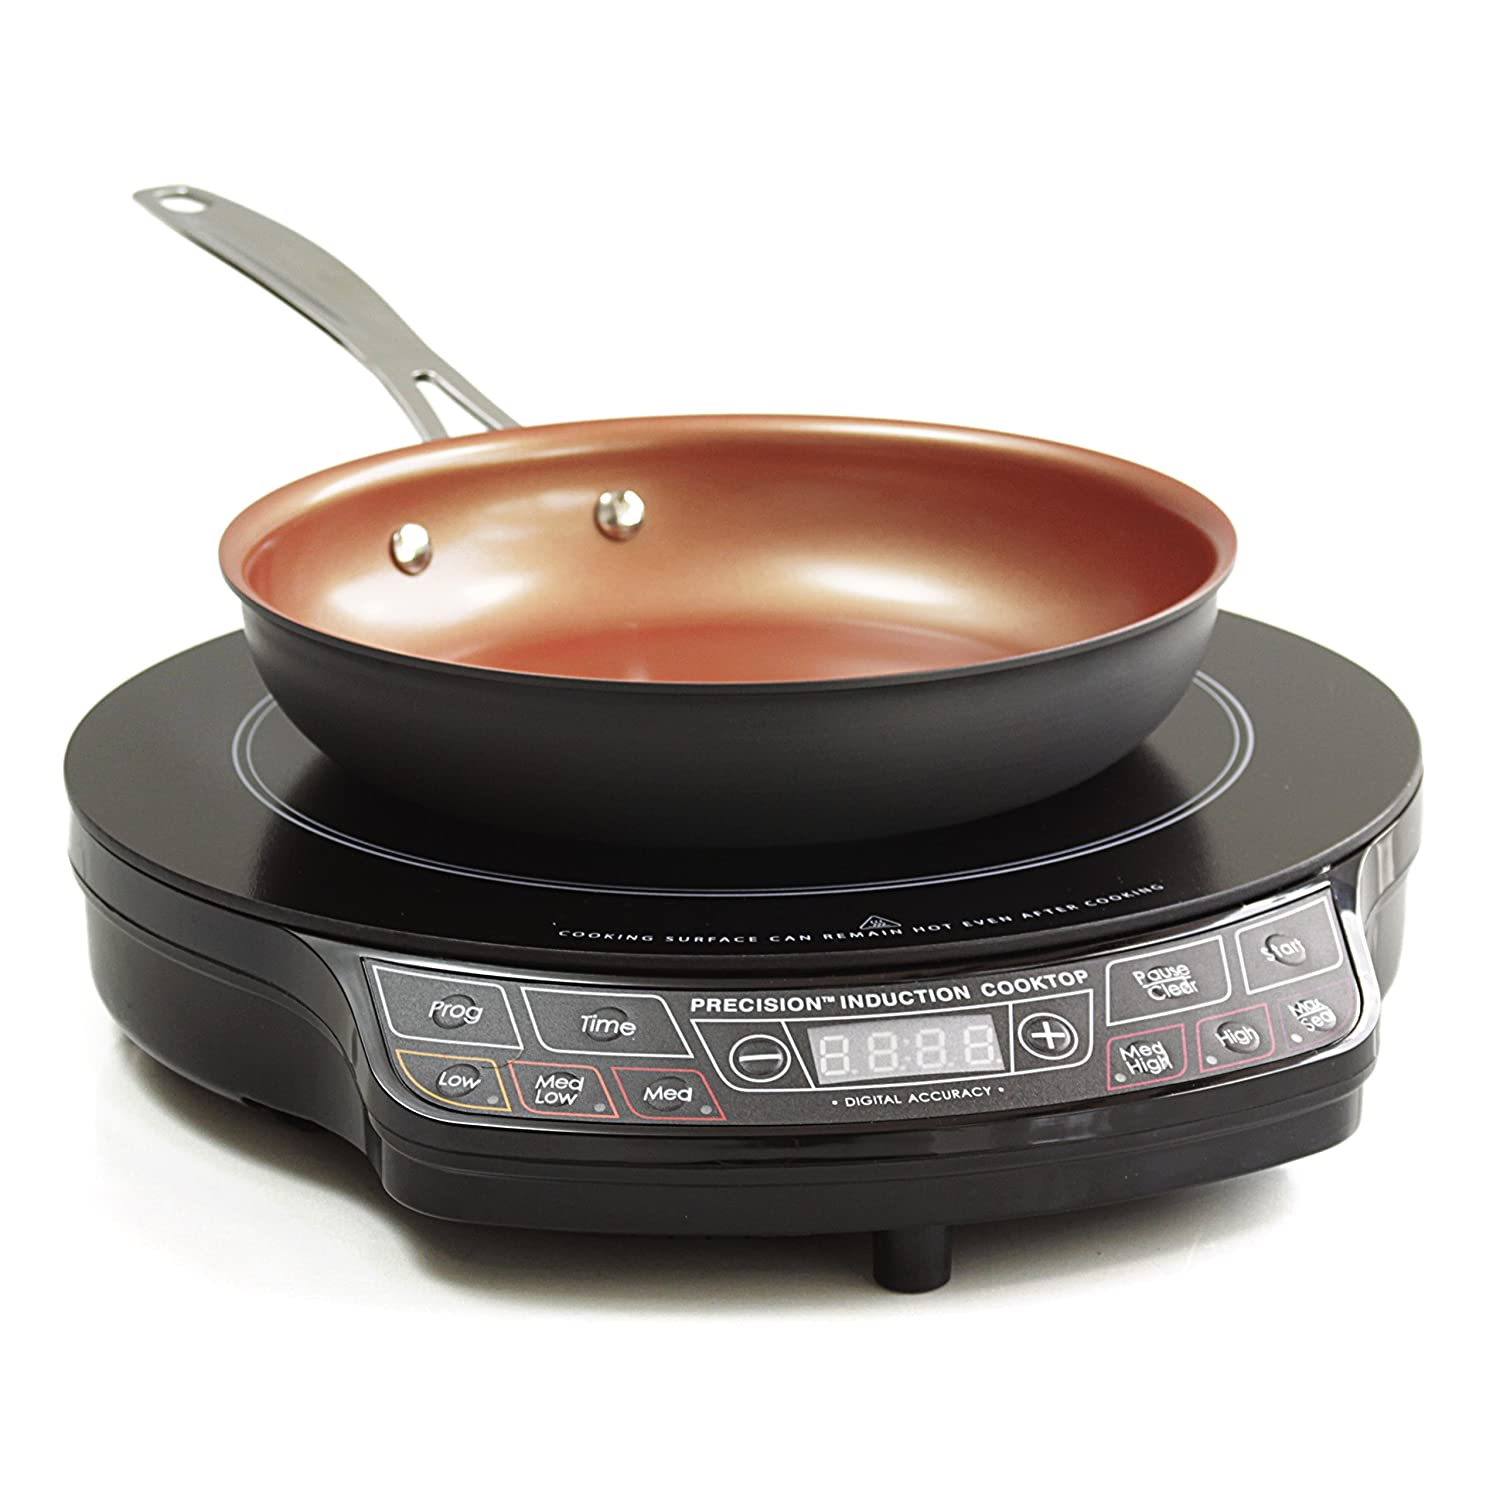 "Enjoy this Special Deal with NuWave PIC GOLD 1500 Watts- Induction Cooktop With Healthy Ceramic 9"" Fry Pan"